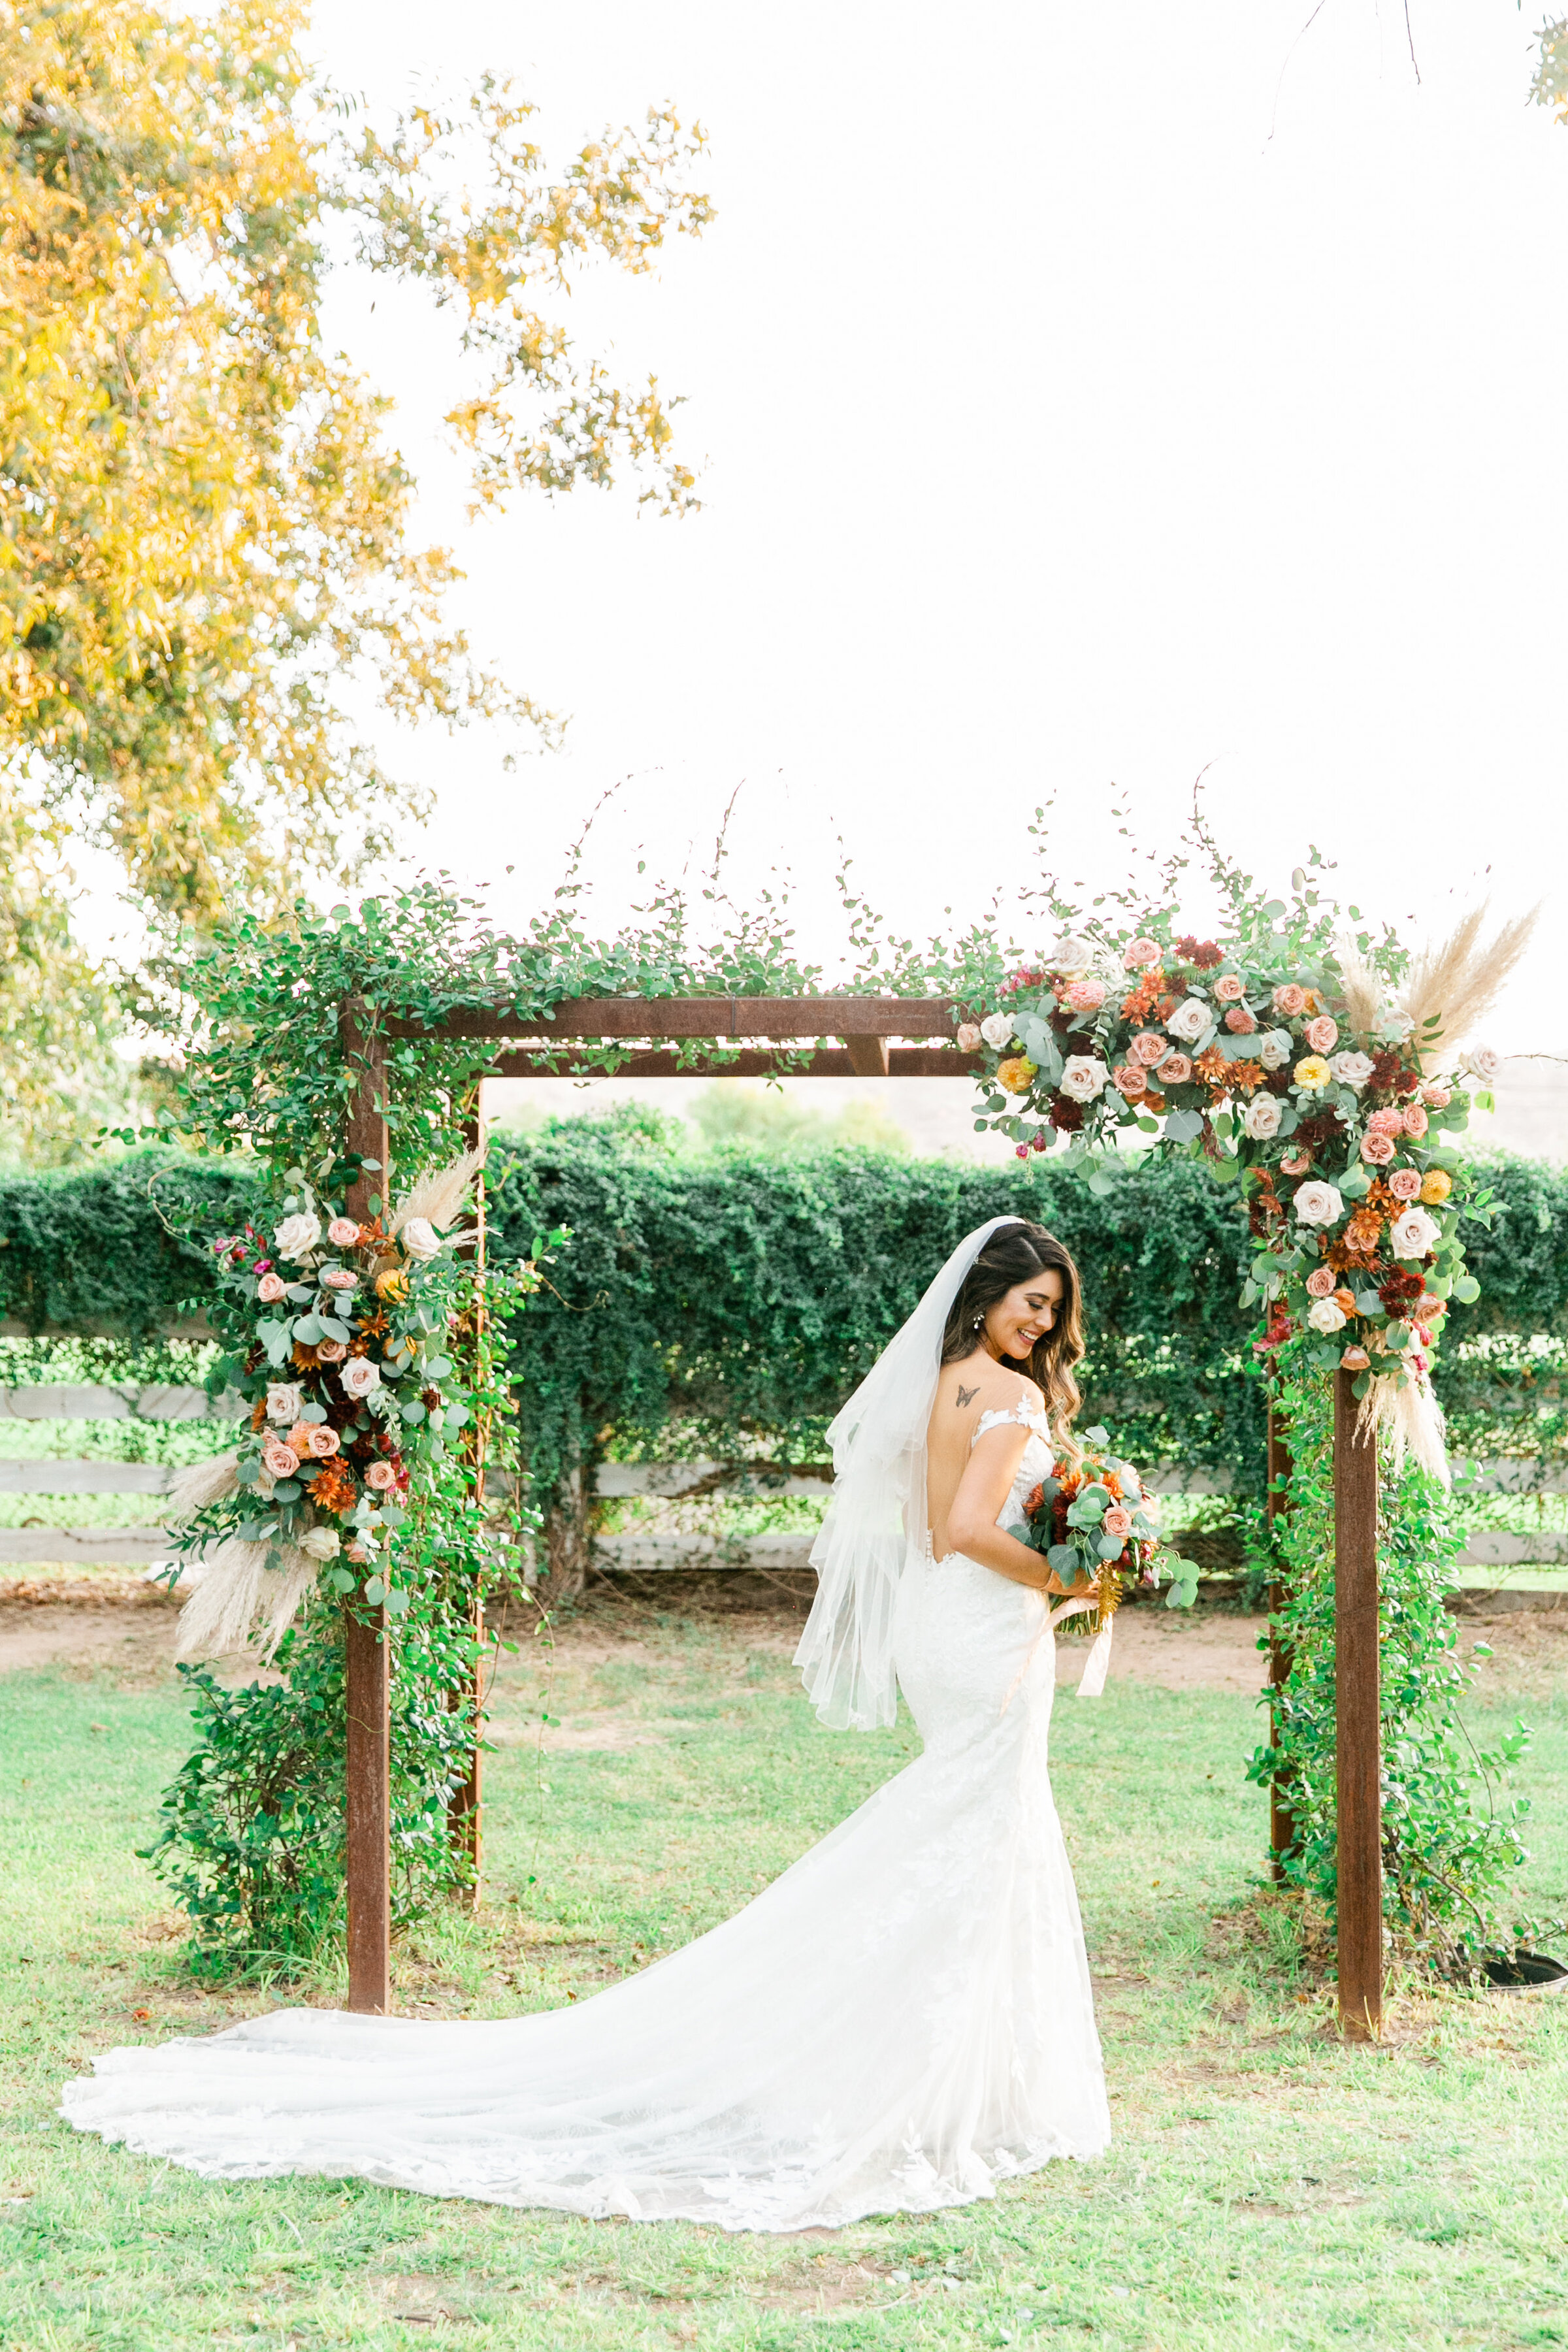 Karlie Colleen Photography - Phoenix Arizona - Farm At South Mountain Venue - Vanessa & Robert-660